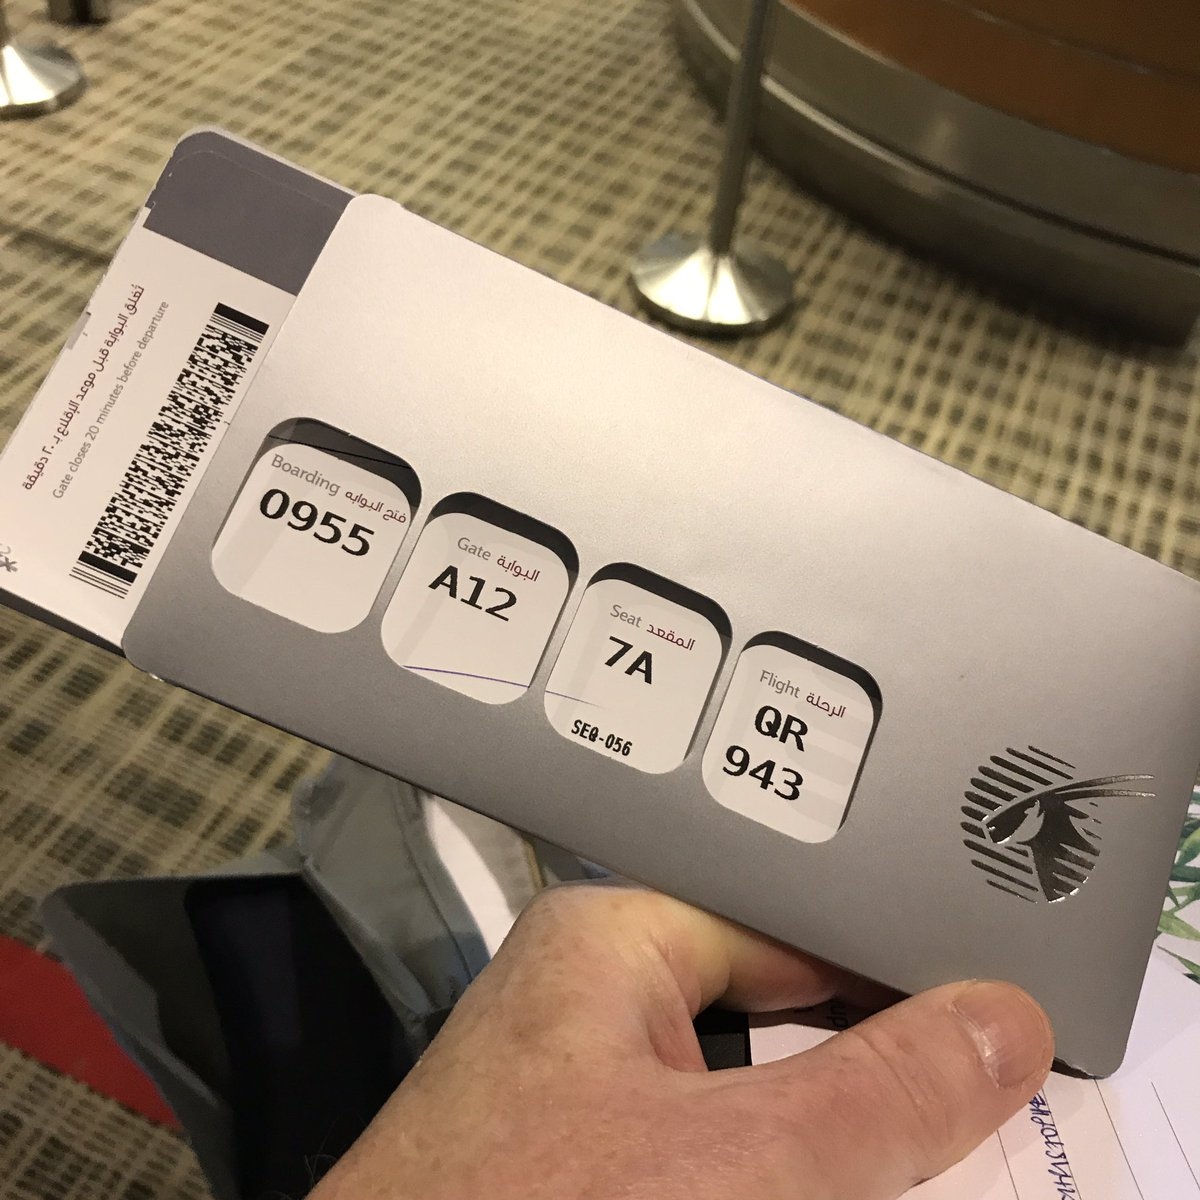 Analog design delight! Look at this @qatarairways boarding pass sleeve. It removes all nonessential info. https://t.co/vRYcQofrJo